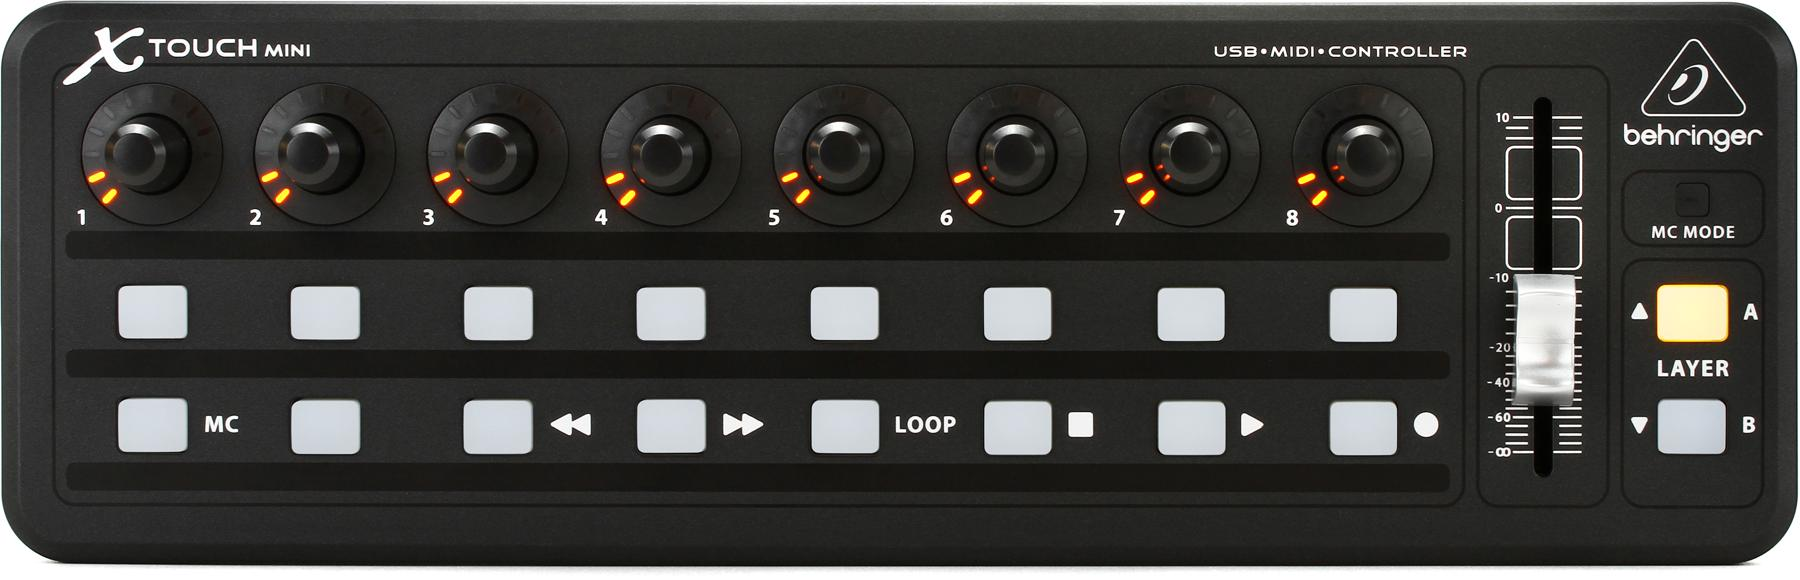 4. Behringer X-Touch Mini